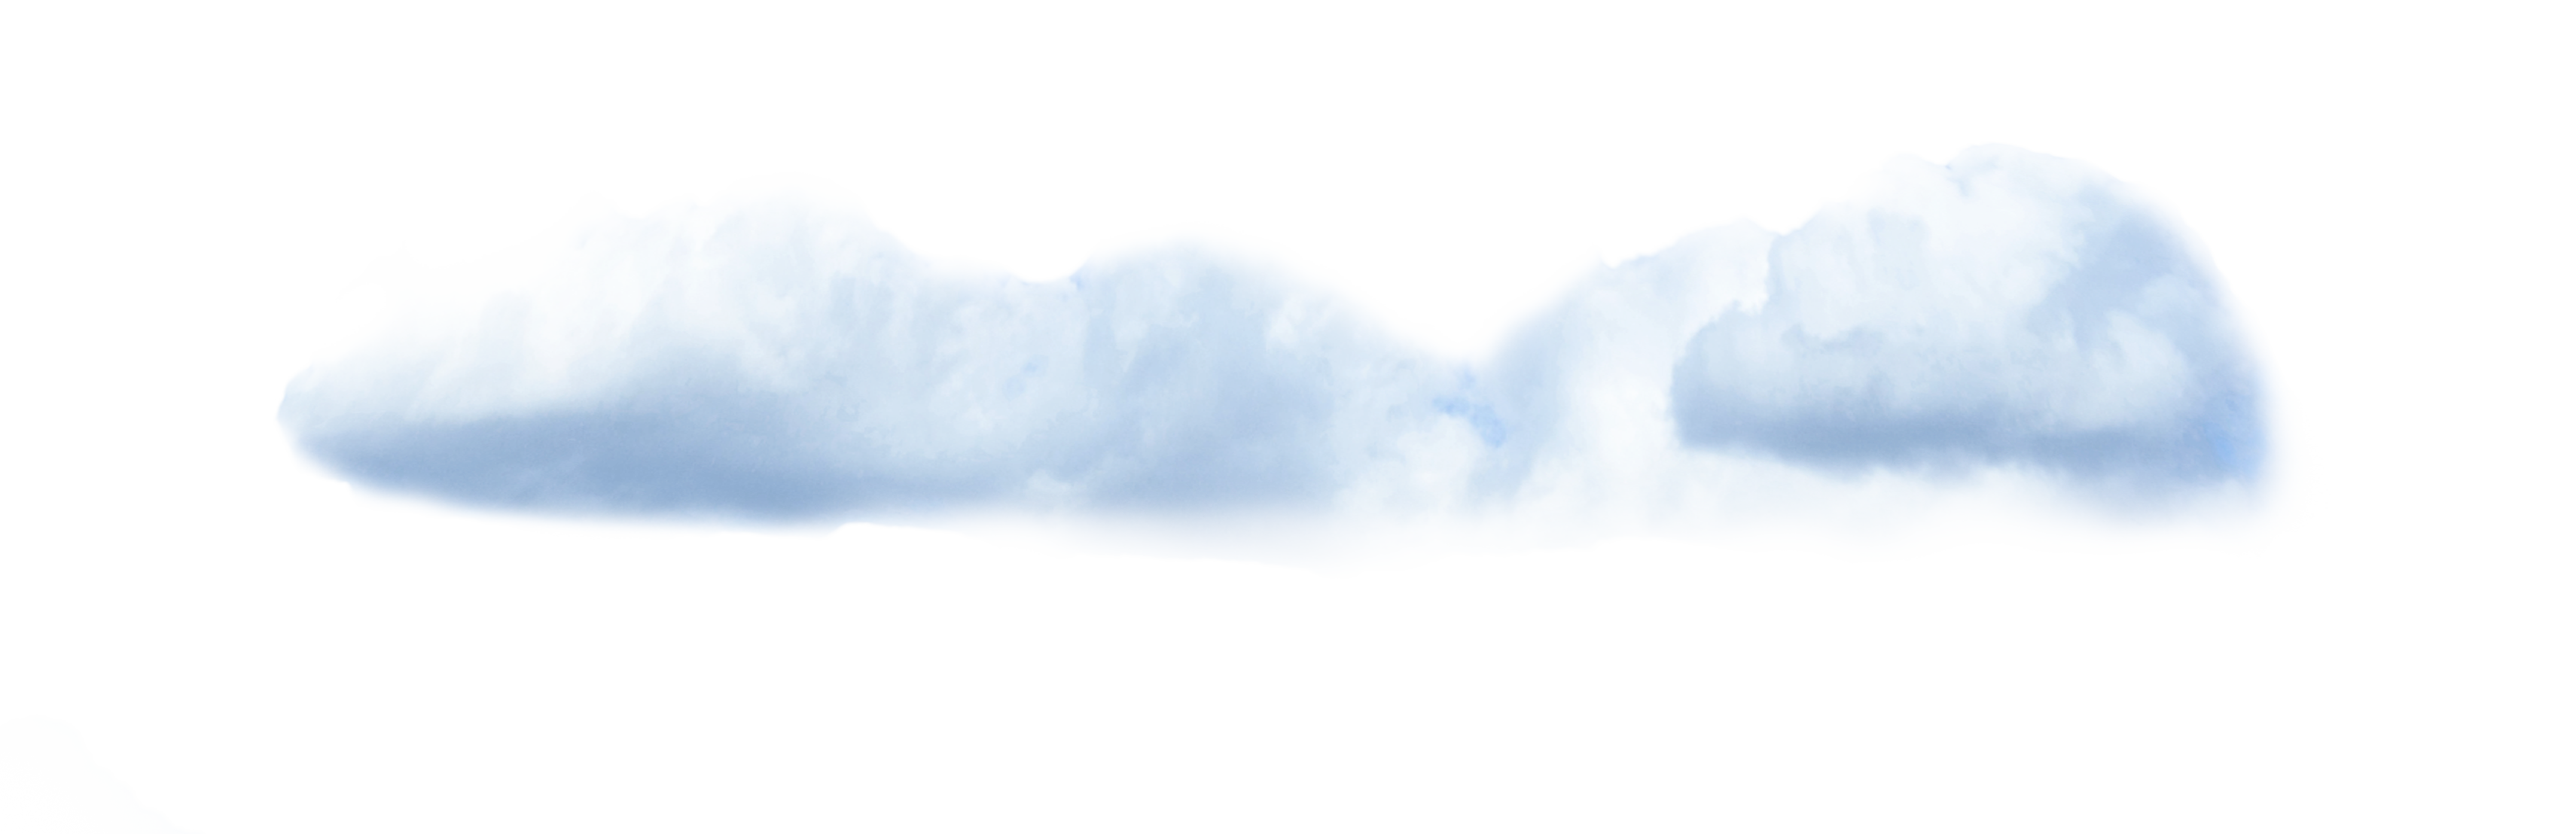 Stormy clouds png. Puffy flaoting cloud stock